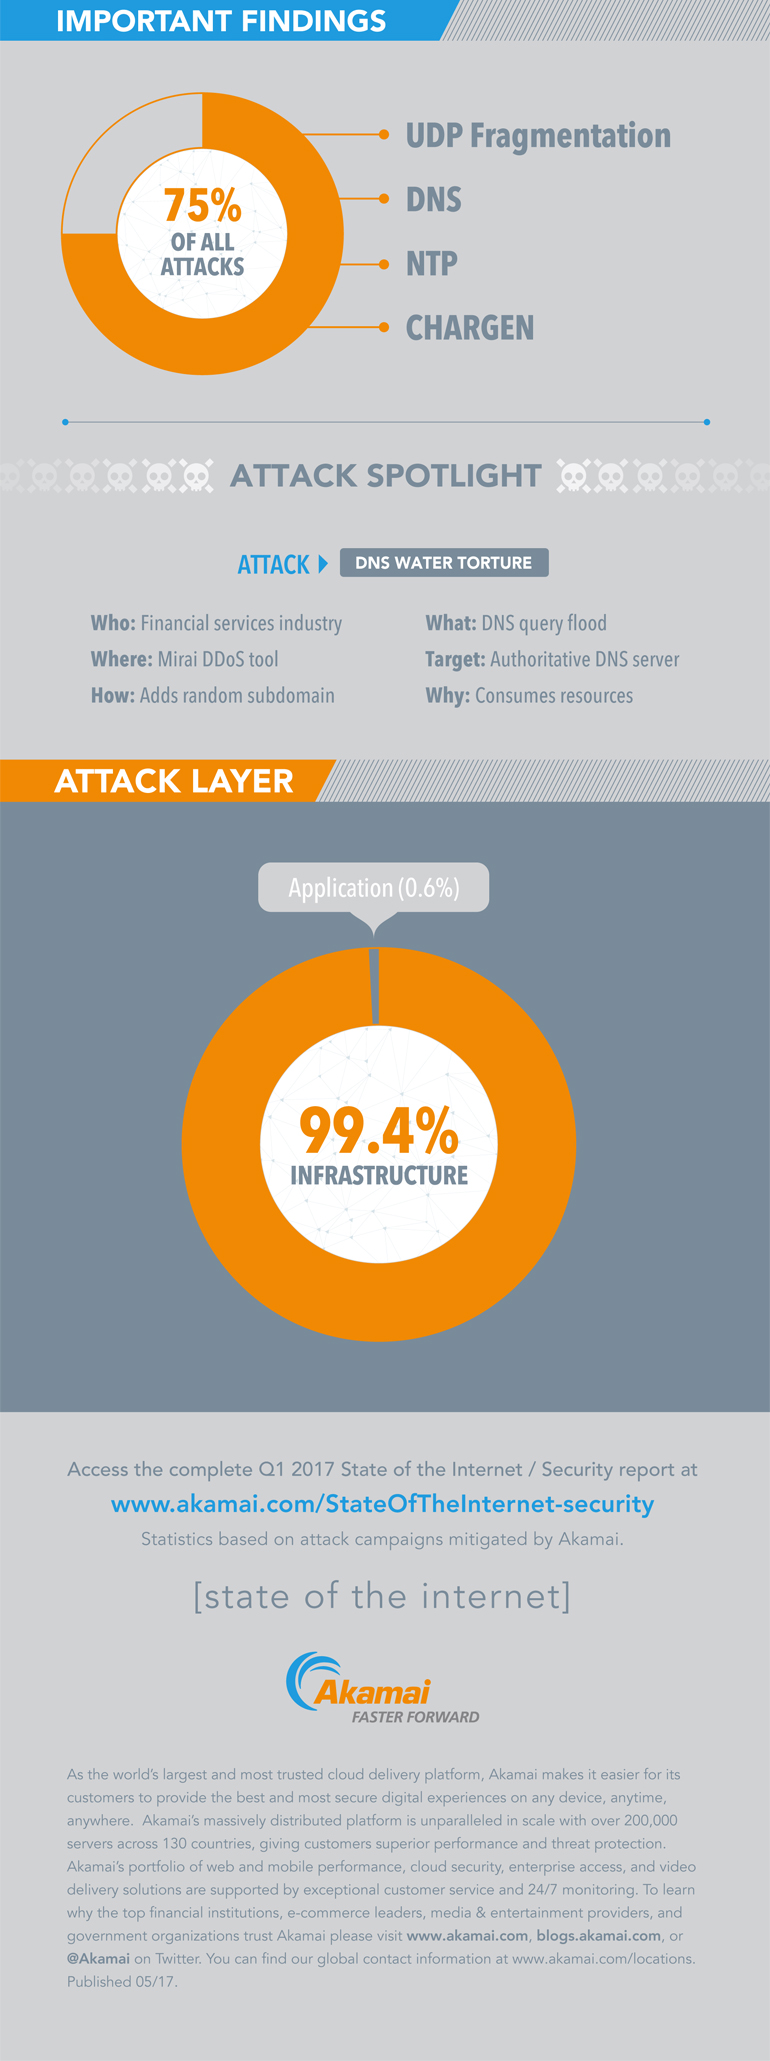 Akamai's Q1 2017 State of the Internet Security Infographic shows online attack stats & trends, using the latest data to spotlight recent DDoS and web application attacks.